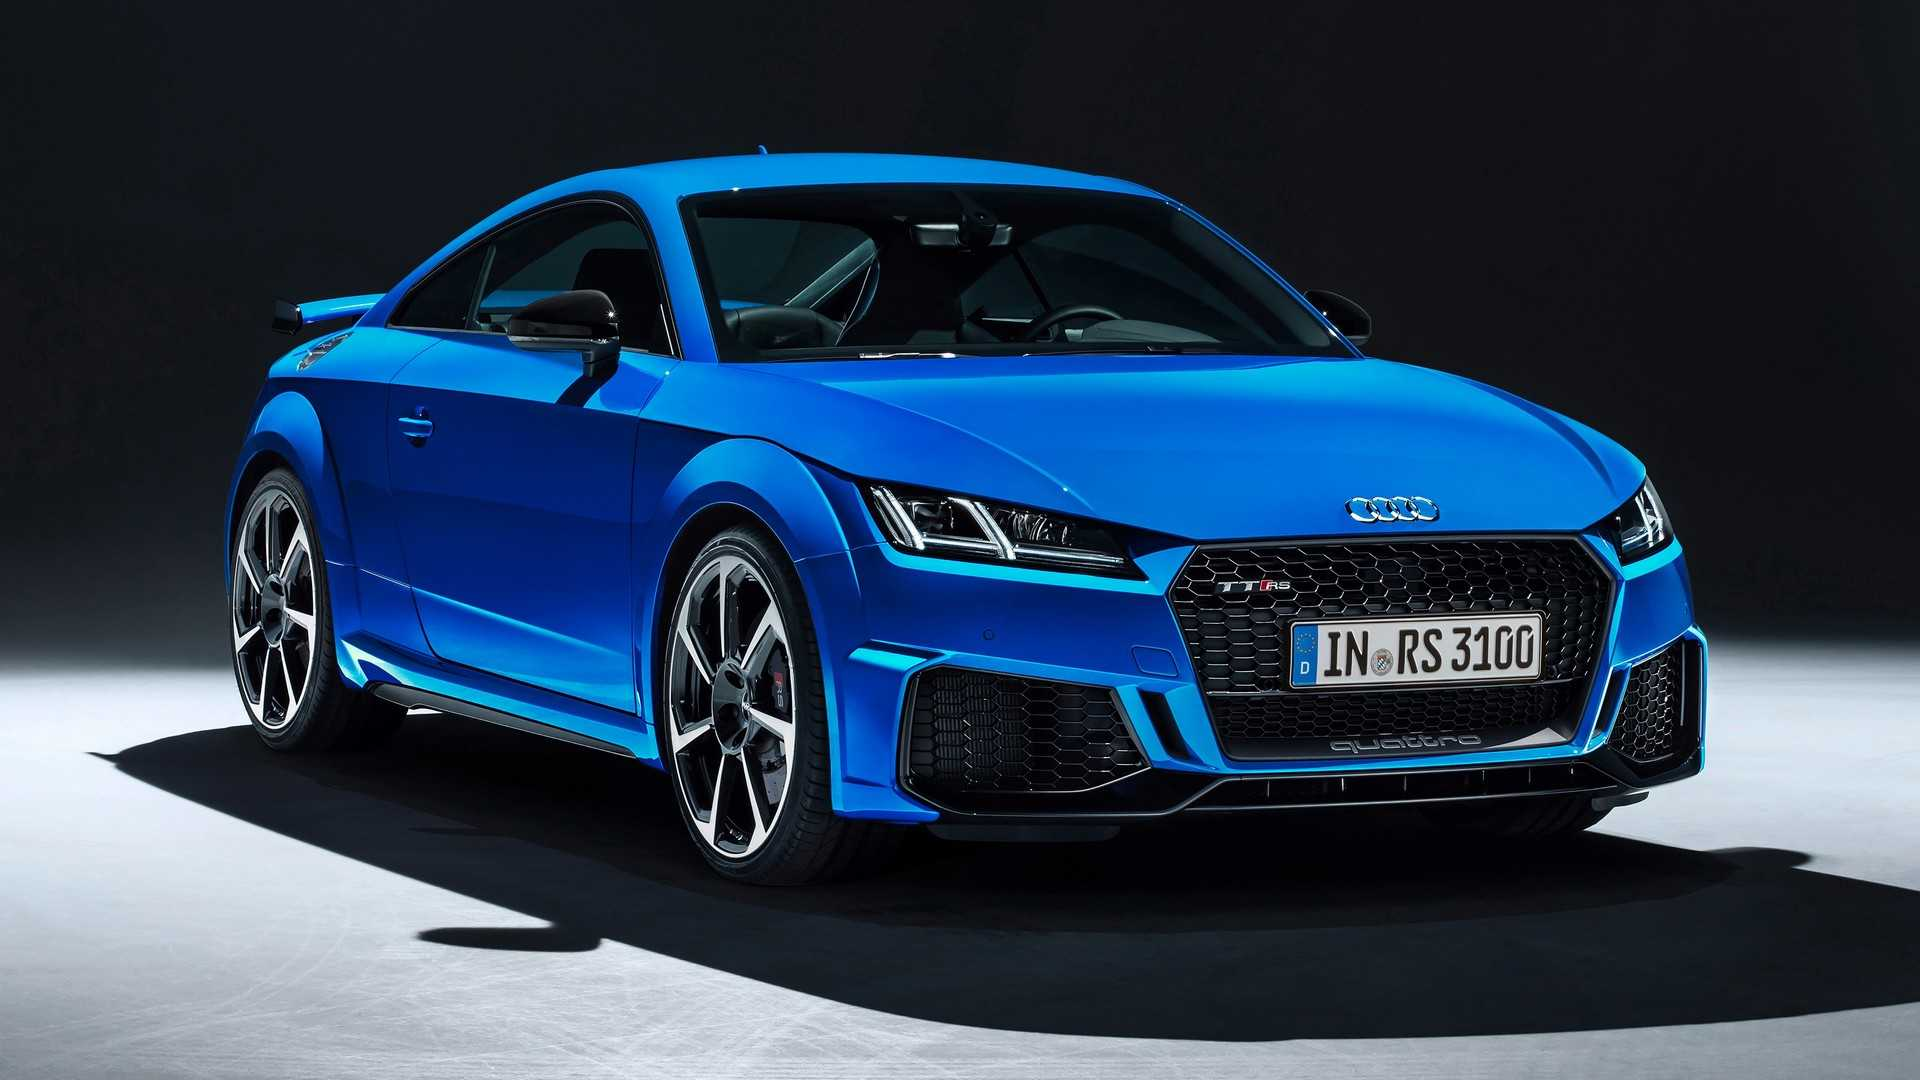 64 New New Audi Tt Rs Plus 2019 Price And Review Engine for New Audi Tt Rs Plus 2019 Price And Review